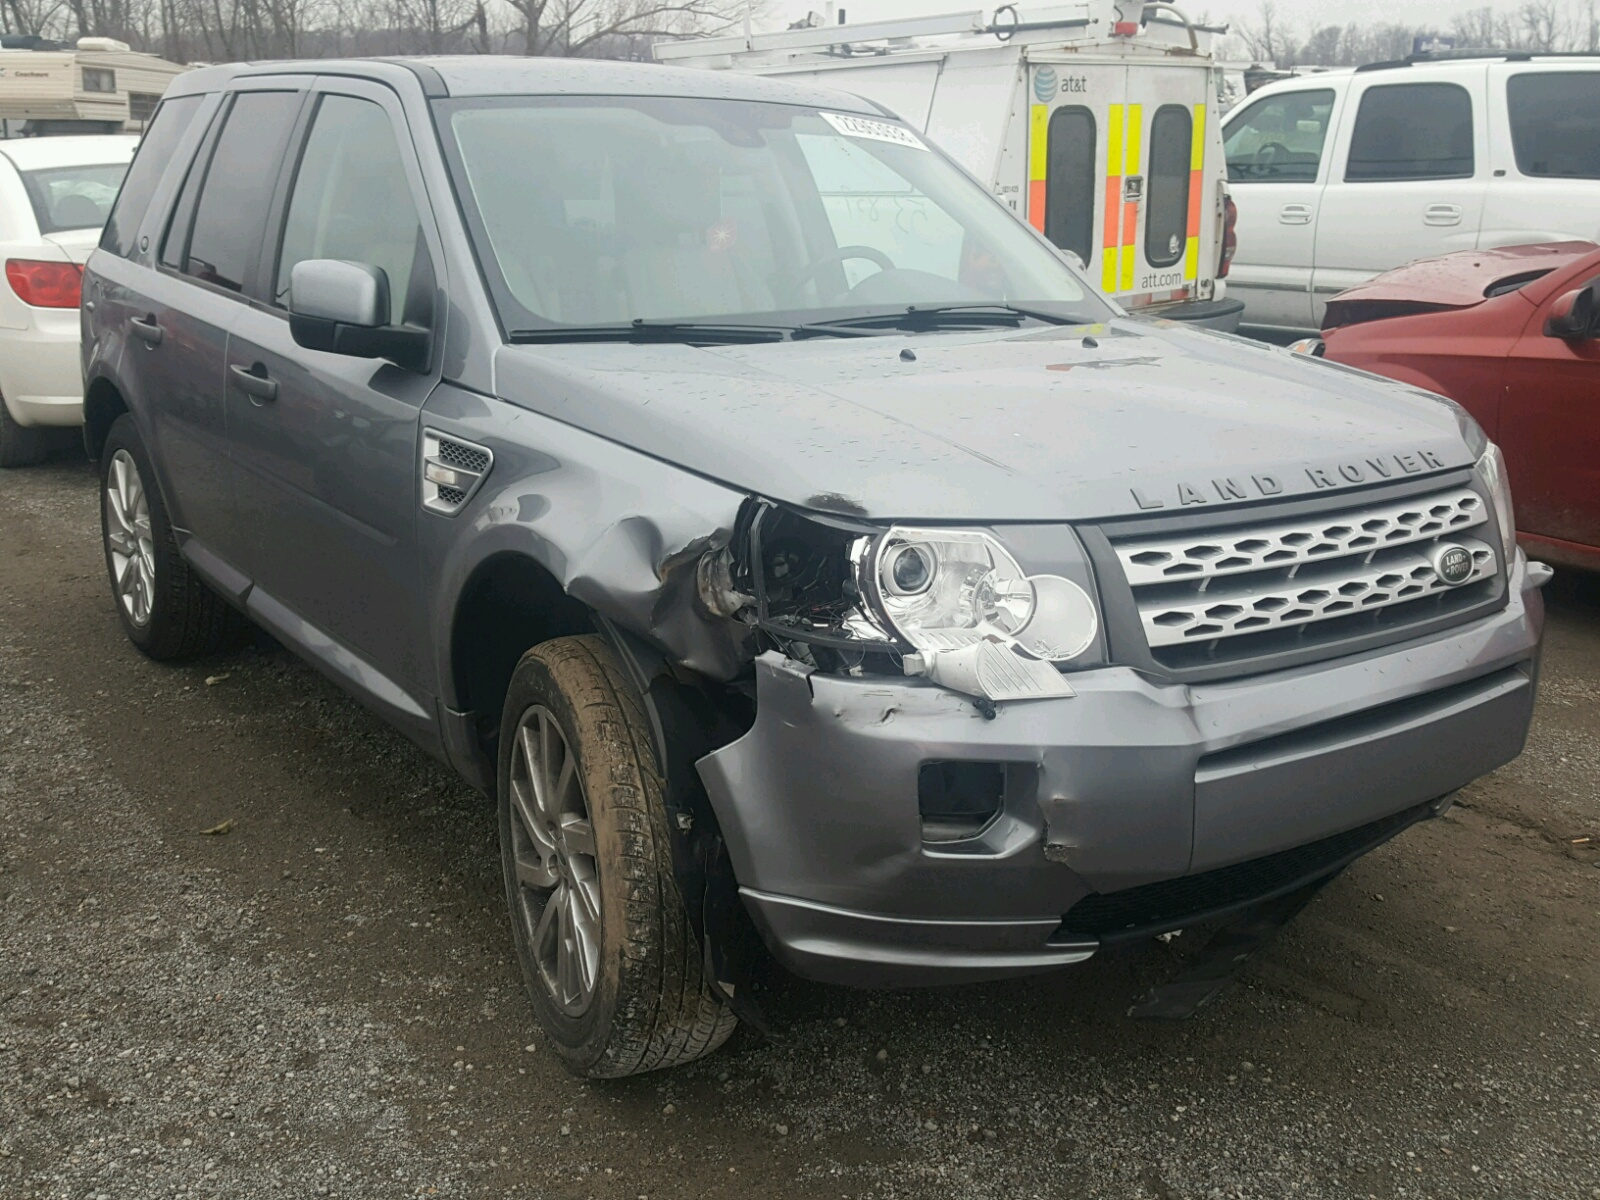 full size range photo view index tint land img rover gallery side landrover